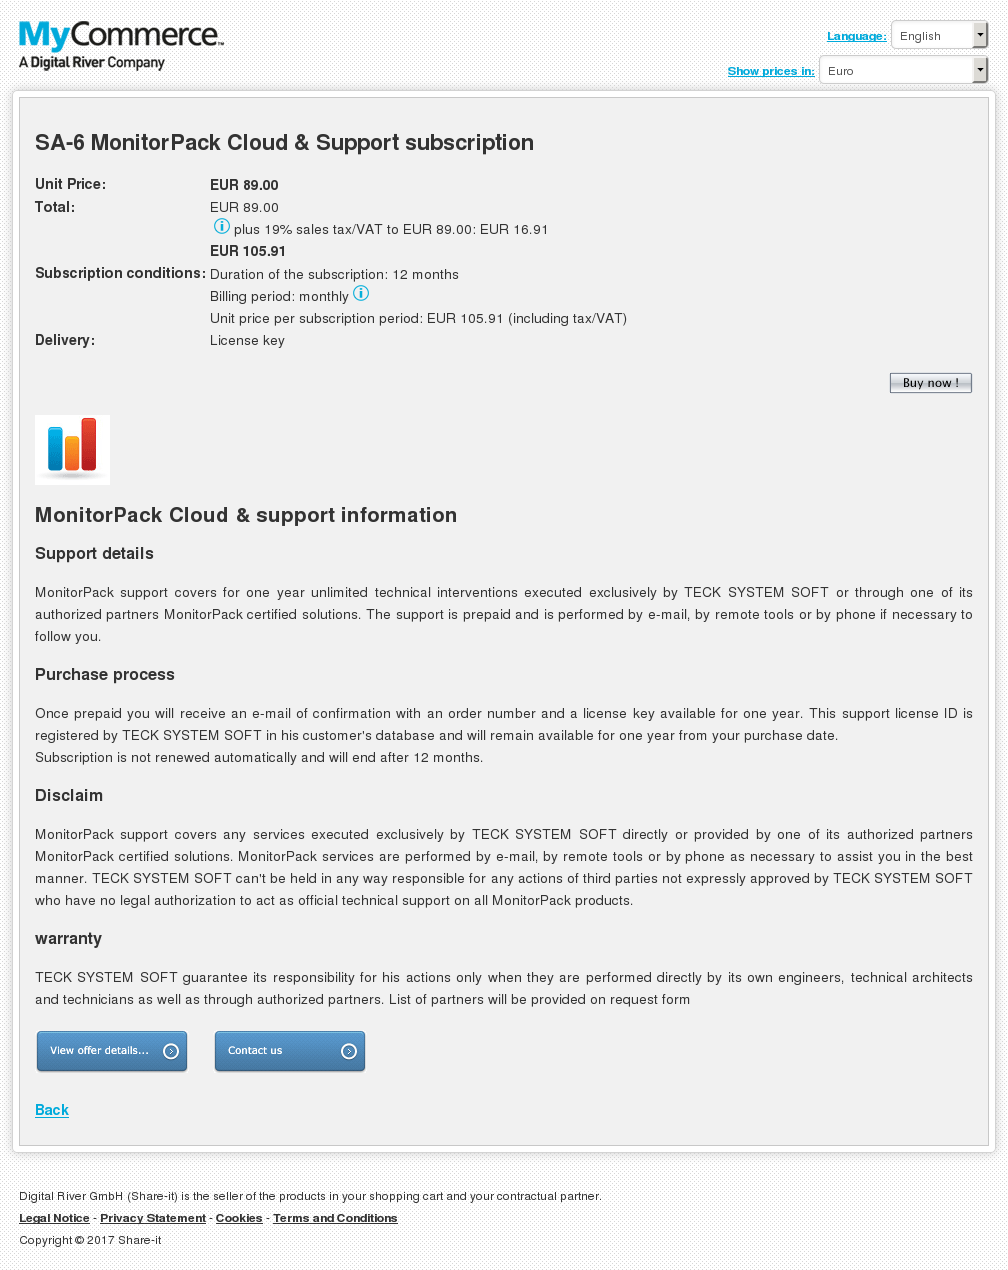 SA-6 MonitorPack Cloud & Support subscription